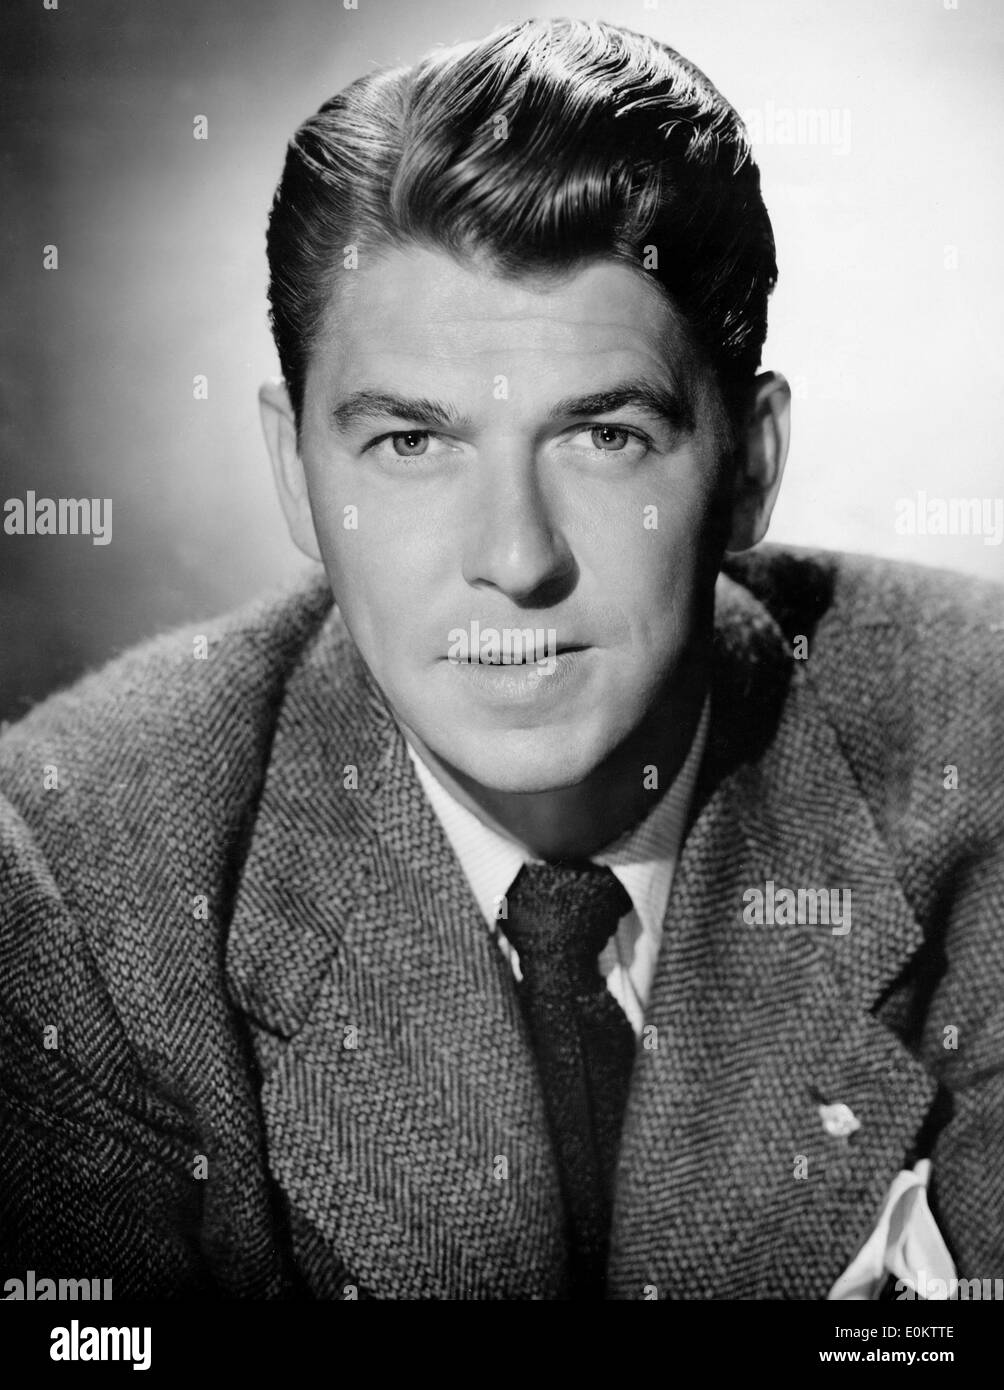 Portrait of Ronald Reagan before he became President - Stock Image